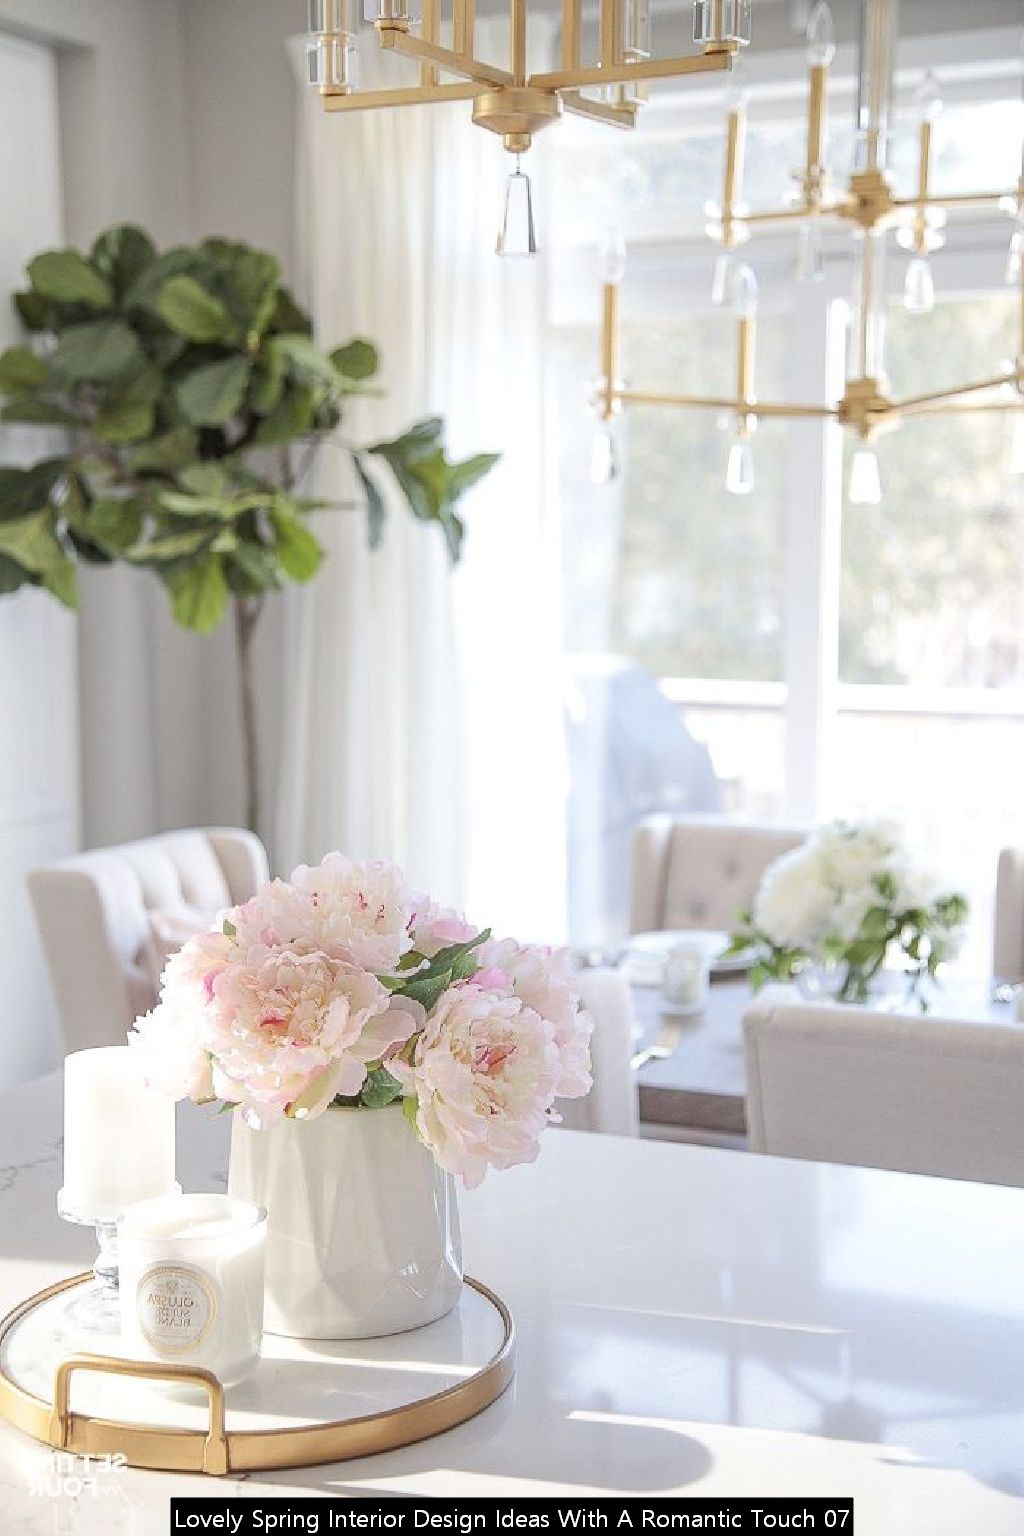 Lovely Spring Interior Design Ideas With A Romantic Touch 07